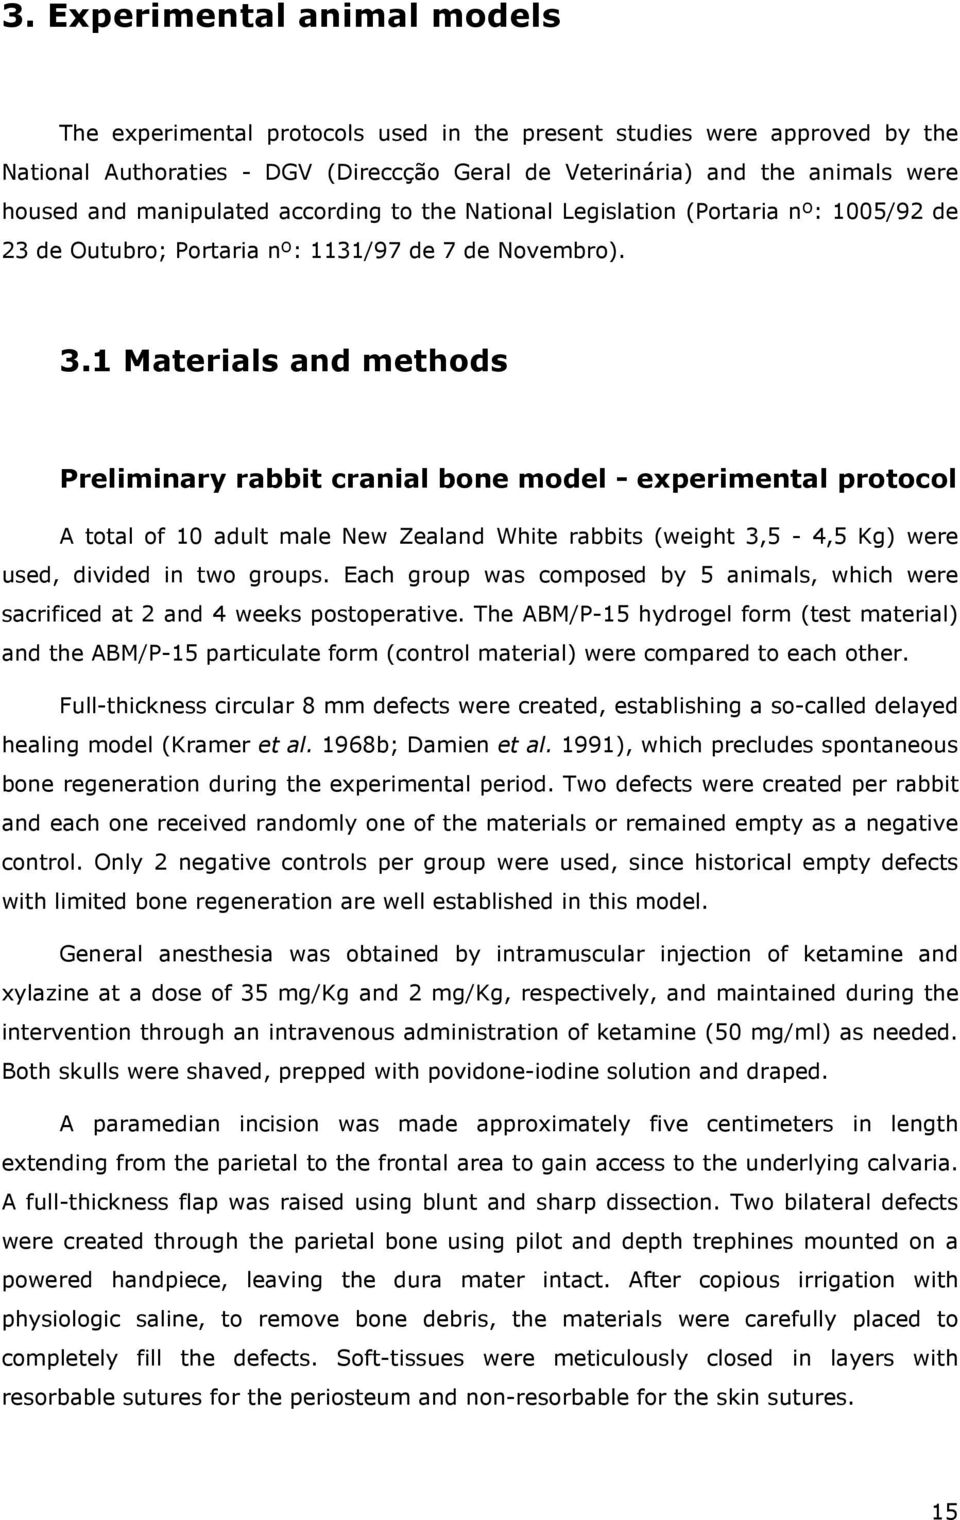 1 Materials and methods Preliminary rabbit cranial bone model - experimental protocol A total of 10 adult male New Zealand White rabbits (weight 3,5-4,5 Kg) were used, divided in two groups.